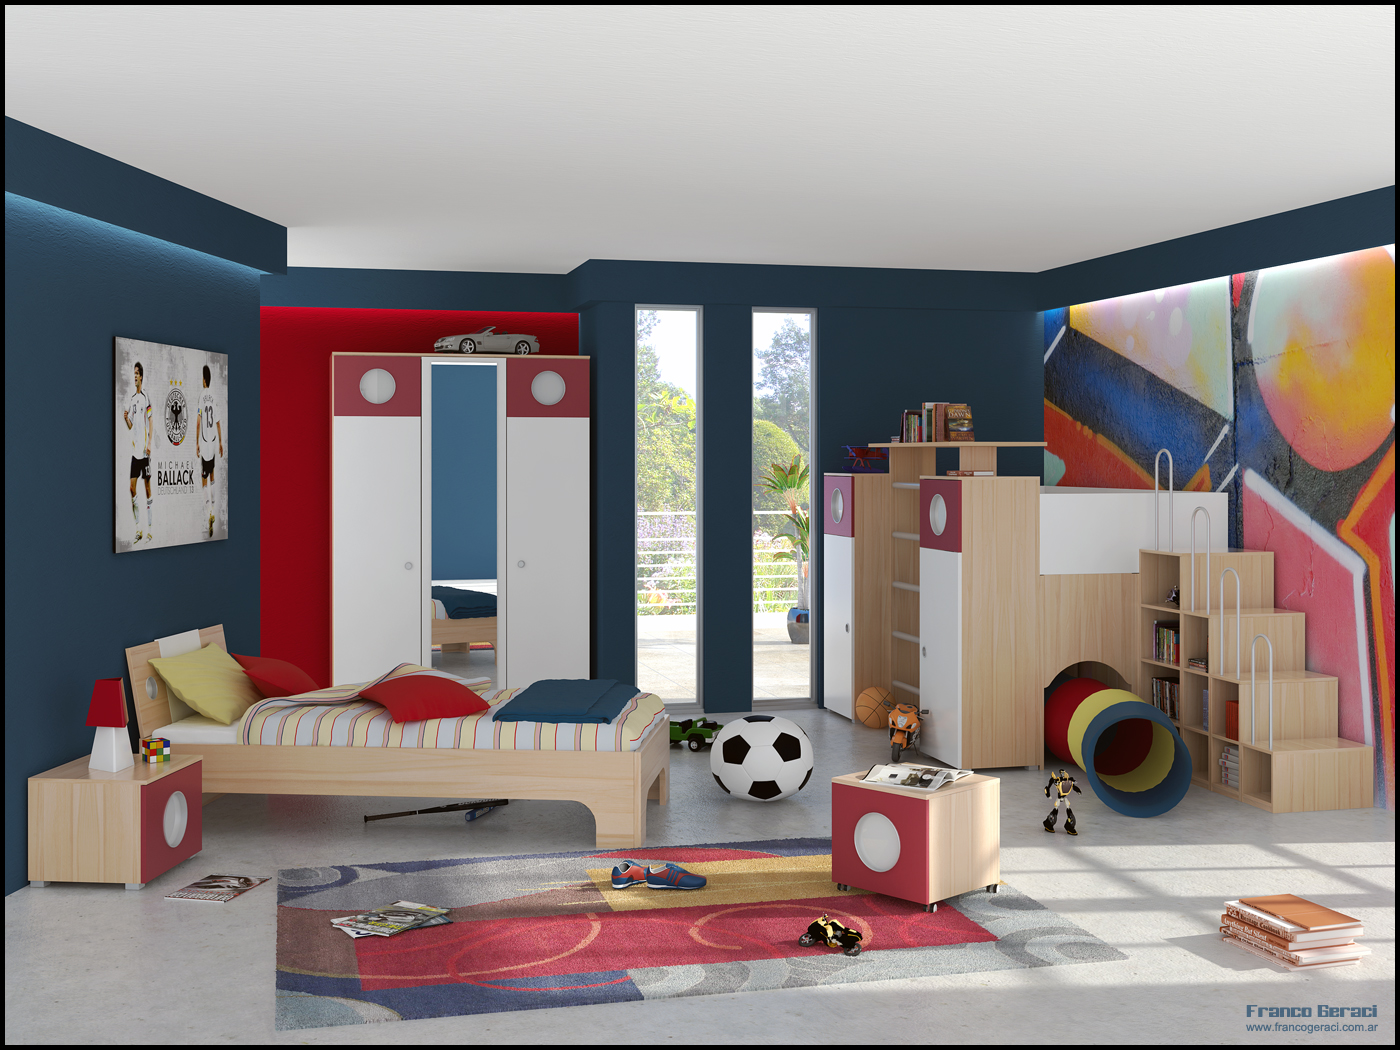 A Spacious Kids Room Kids Room Inspiration Image 10 Interior